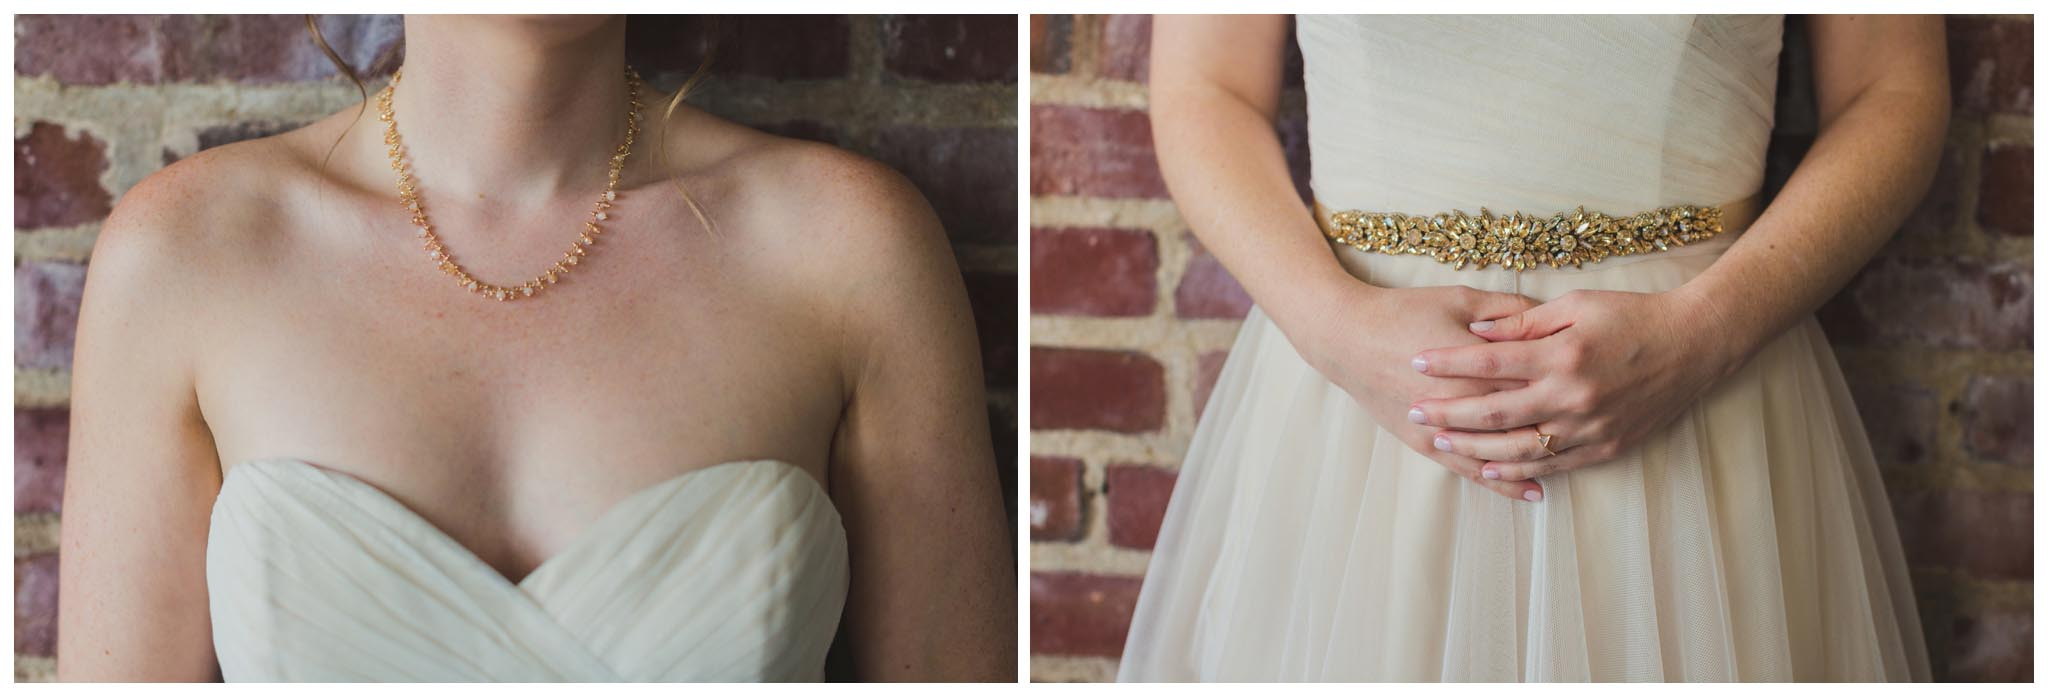 Bride, BHLDN, accessories